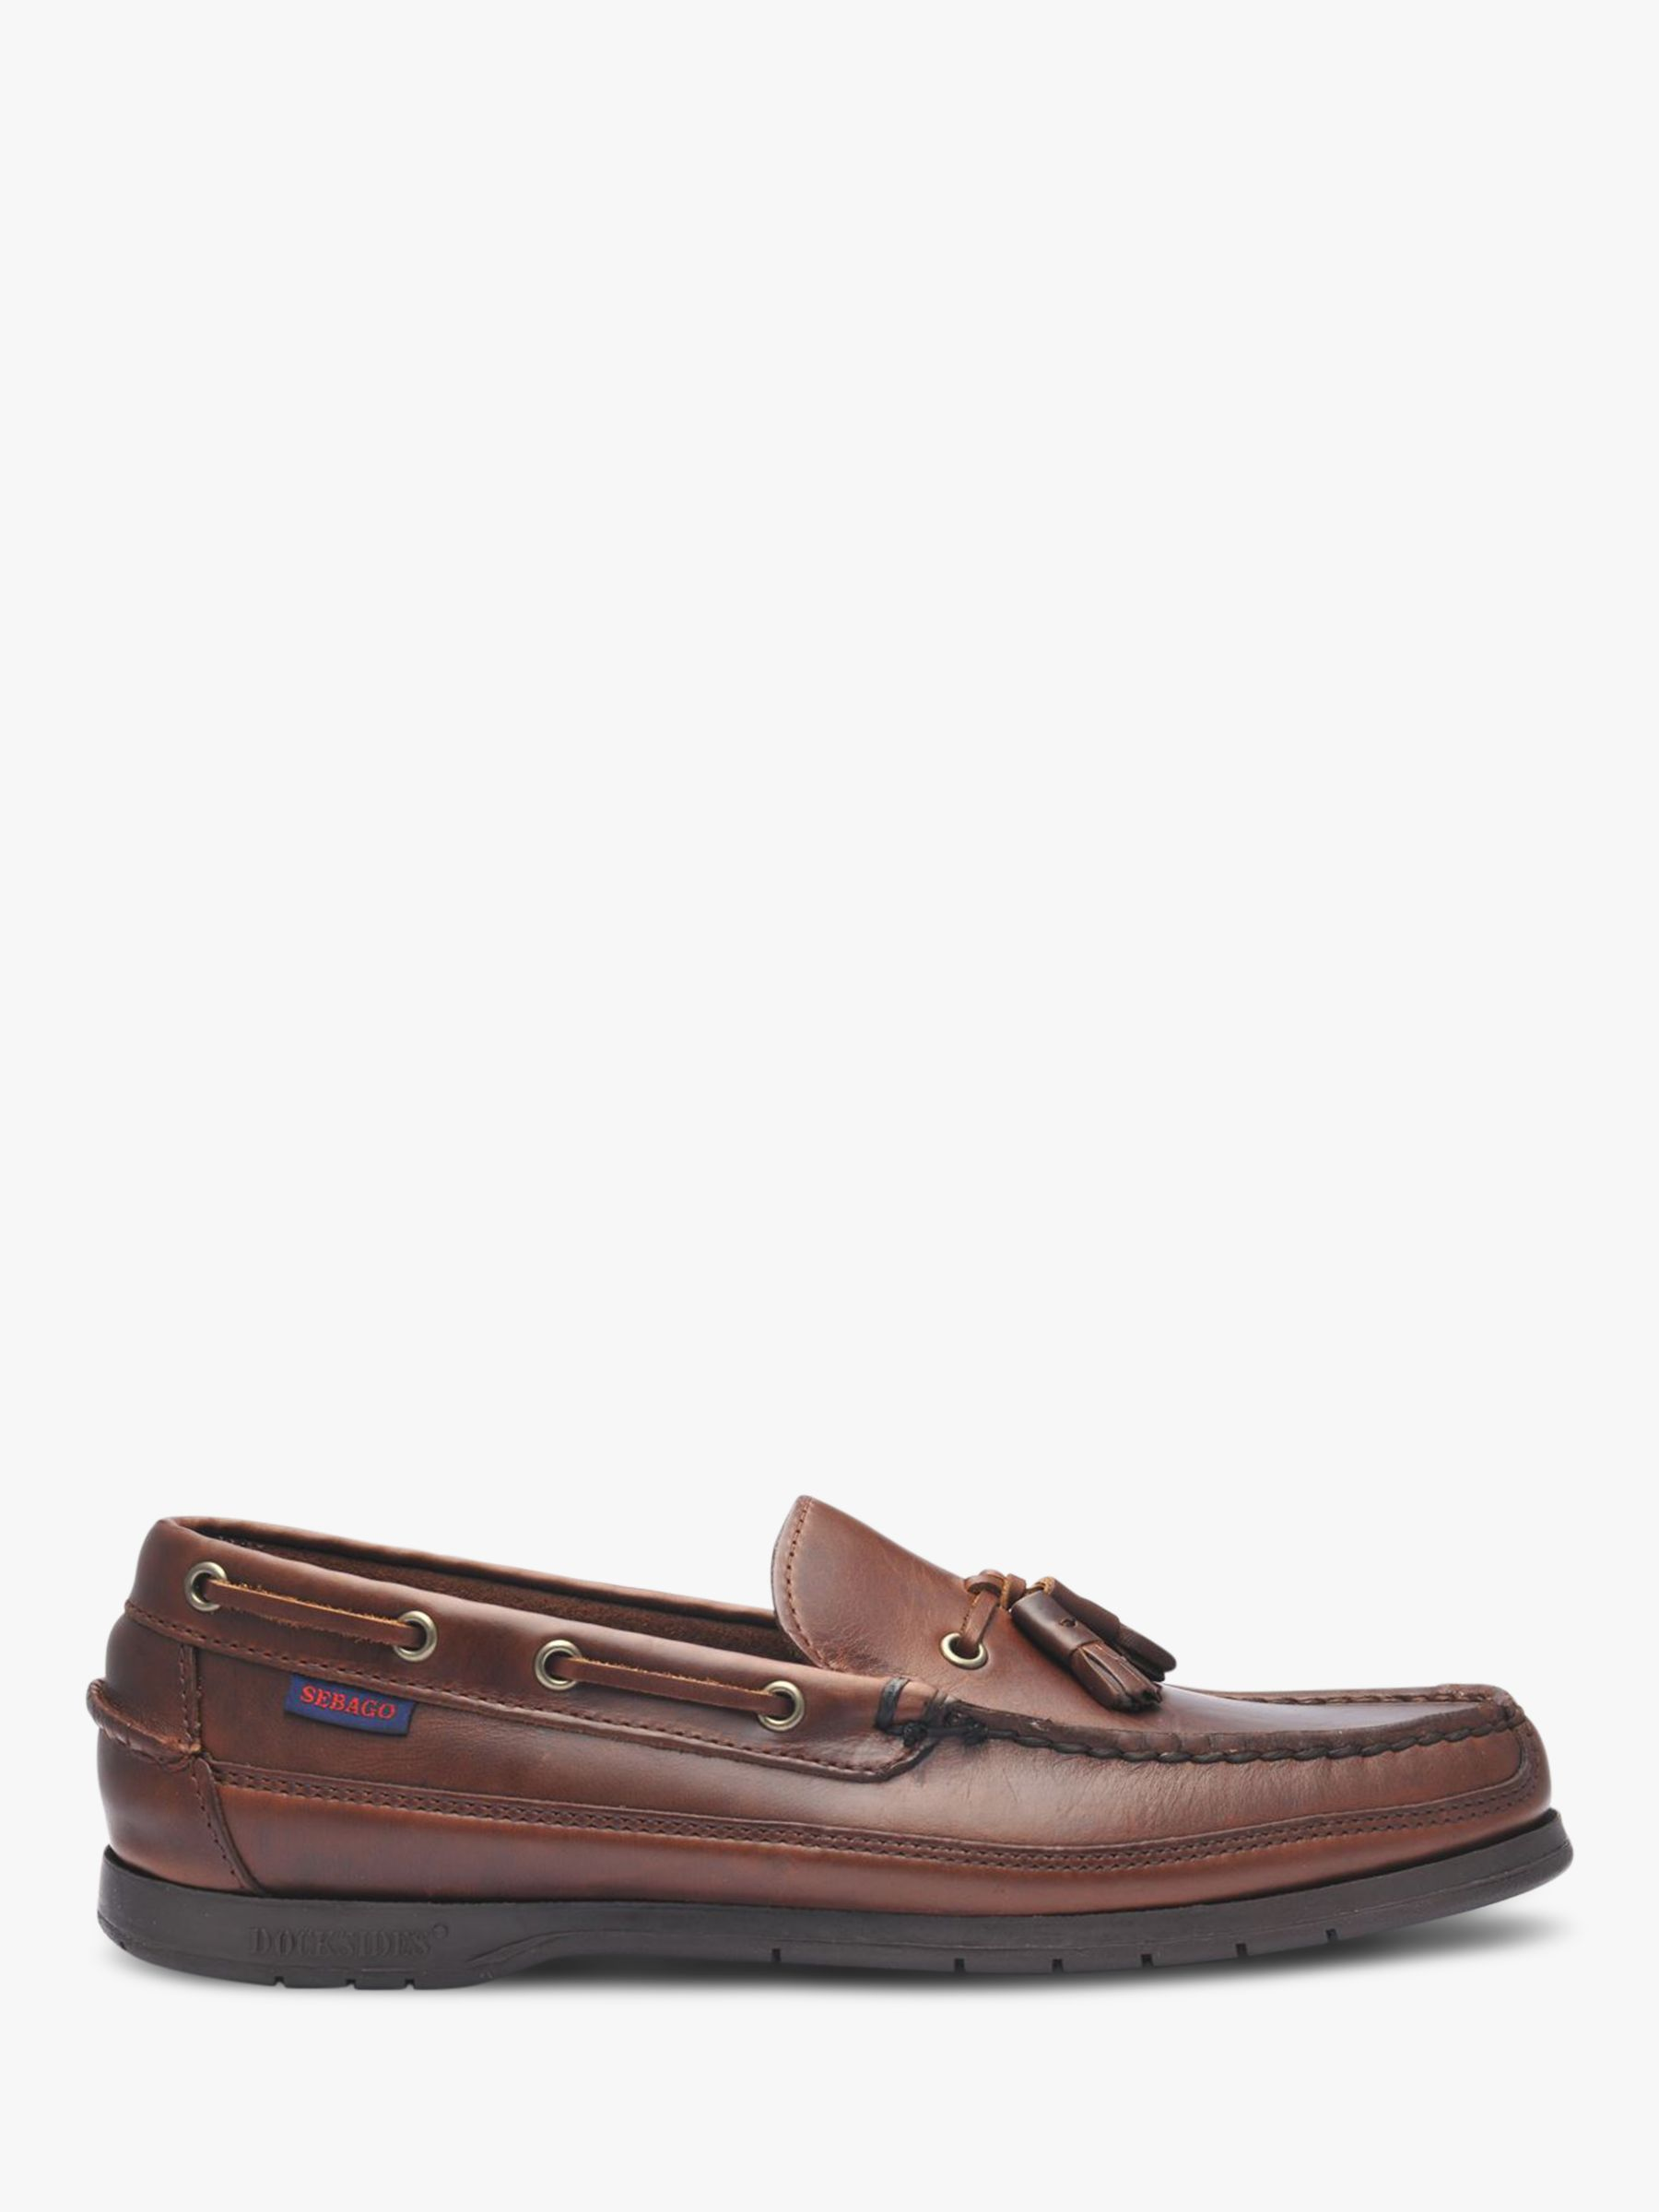 Sebago Sebago Ketch Leather Boat Shoes, Brown